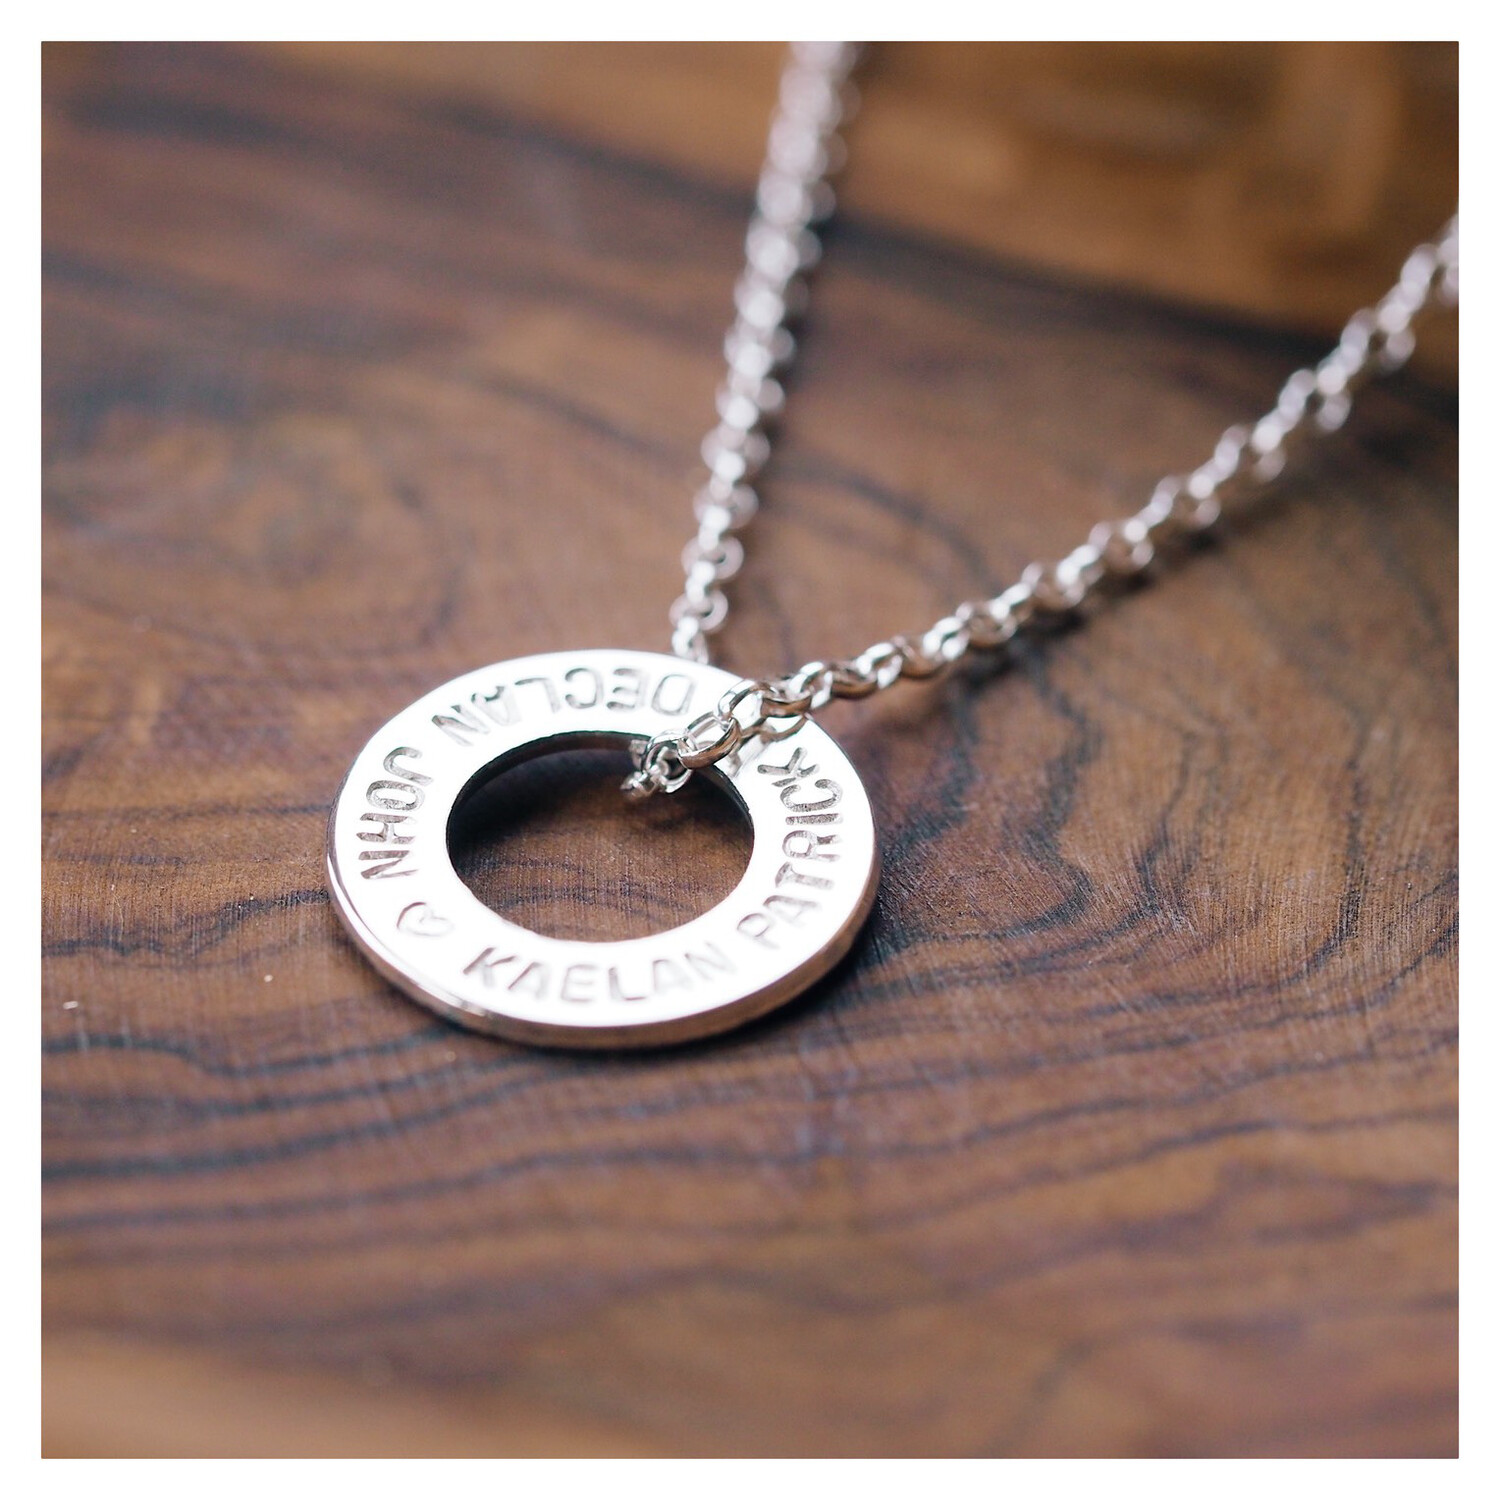 Design Your Own Personalised Necklace - MIDI WASHERS